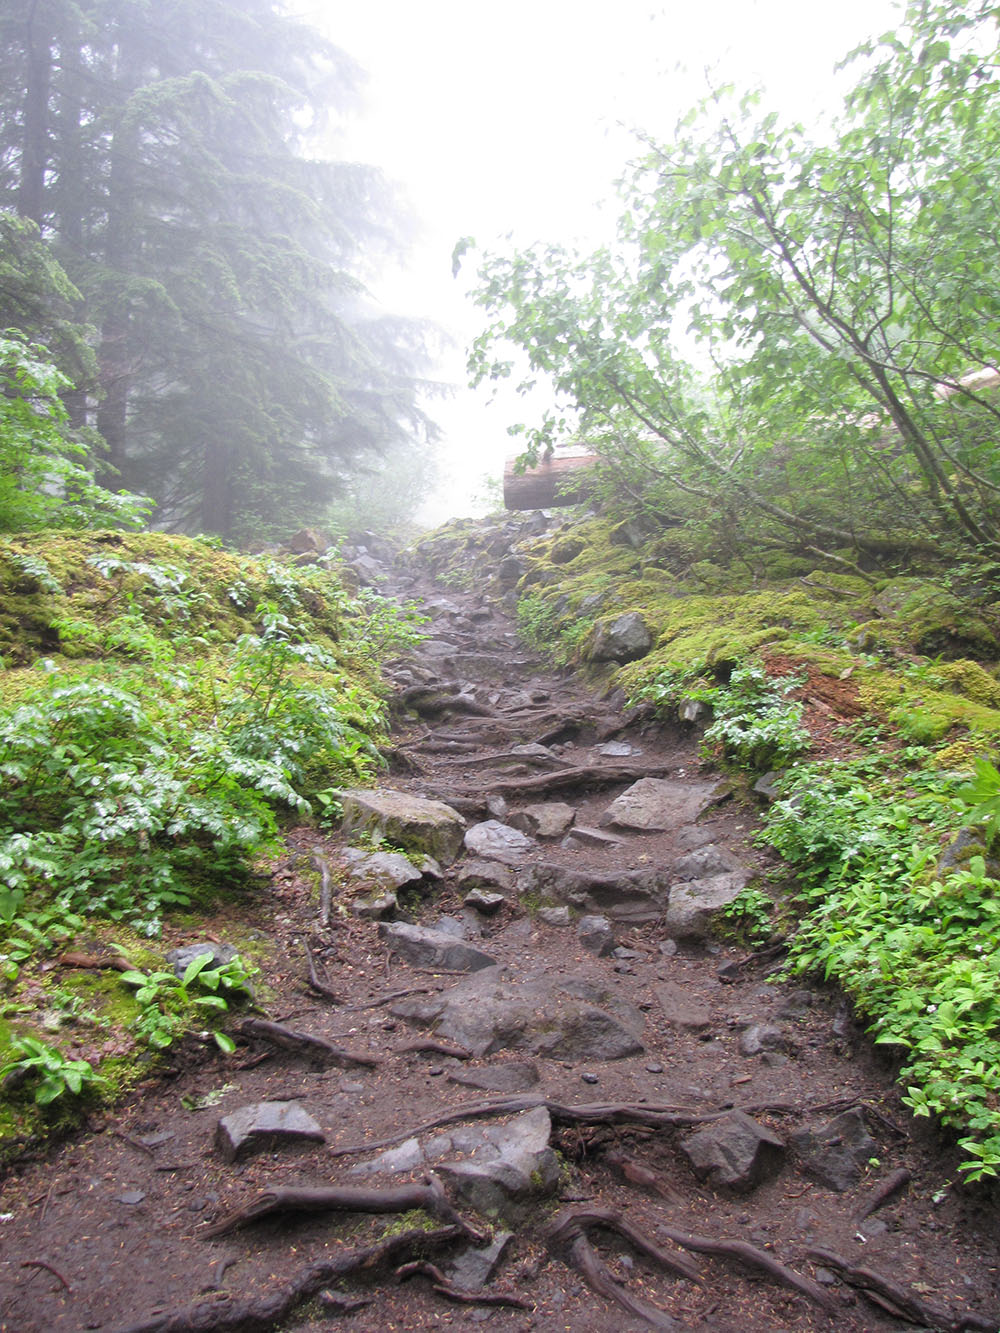 The hike is strenuous, but short: you'll ascend about 1900 feet over the course of a little more than two miles if you head all the way to the top of the falls.